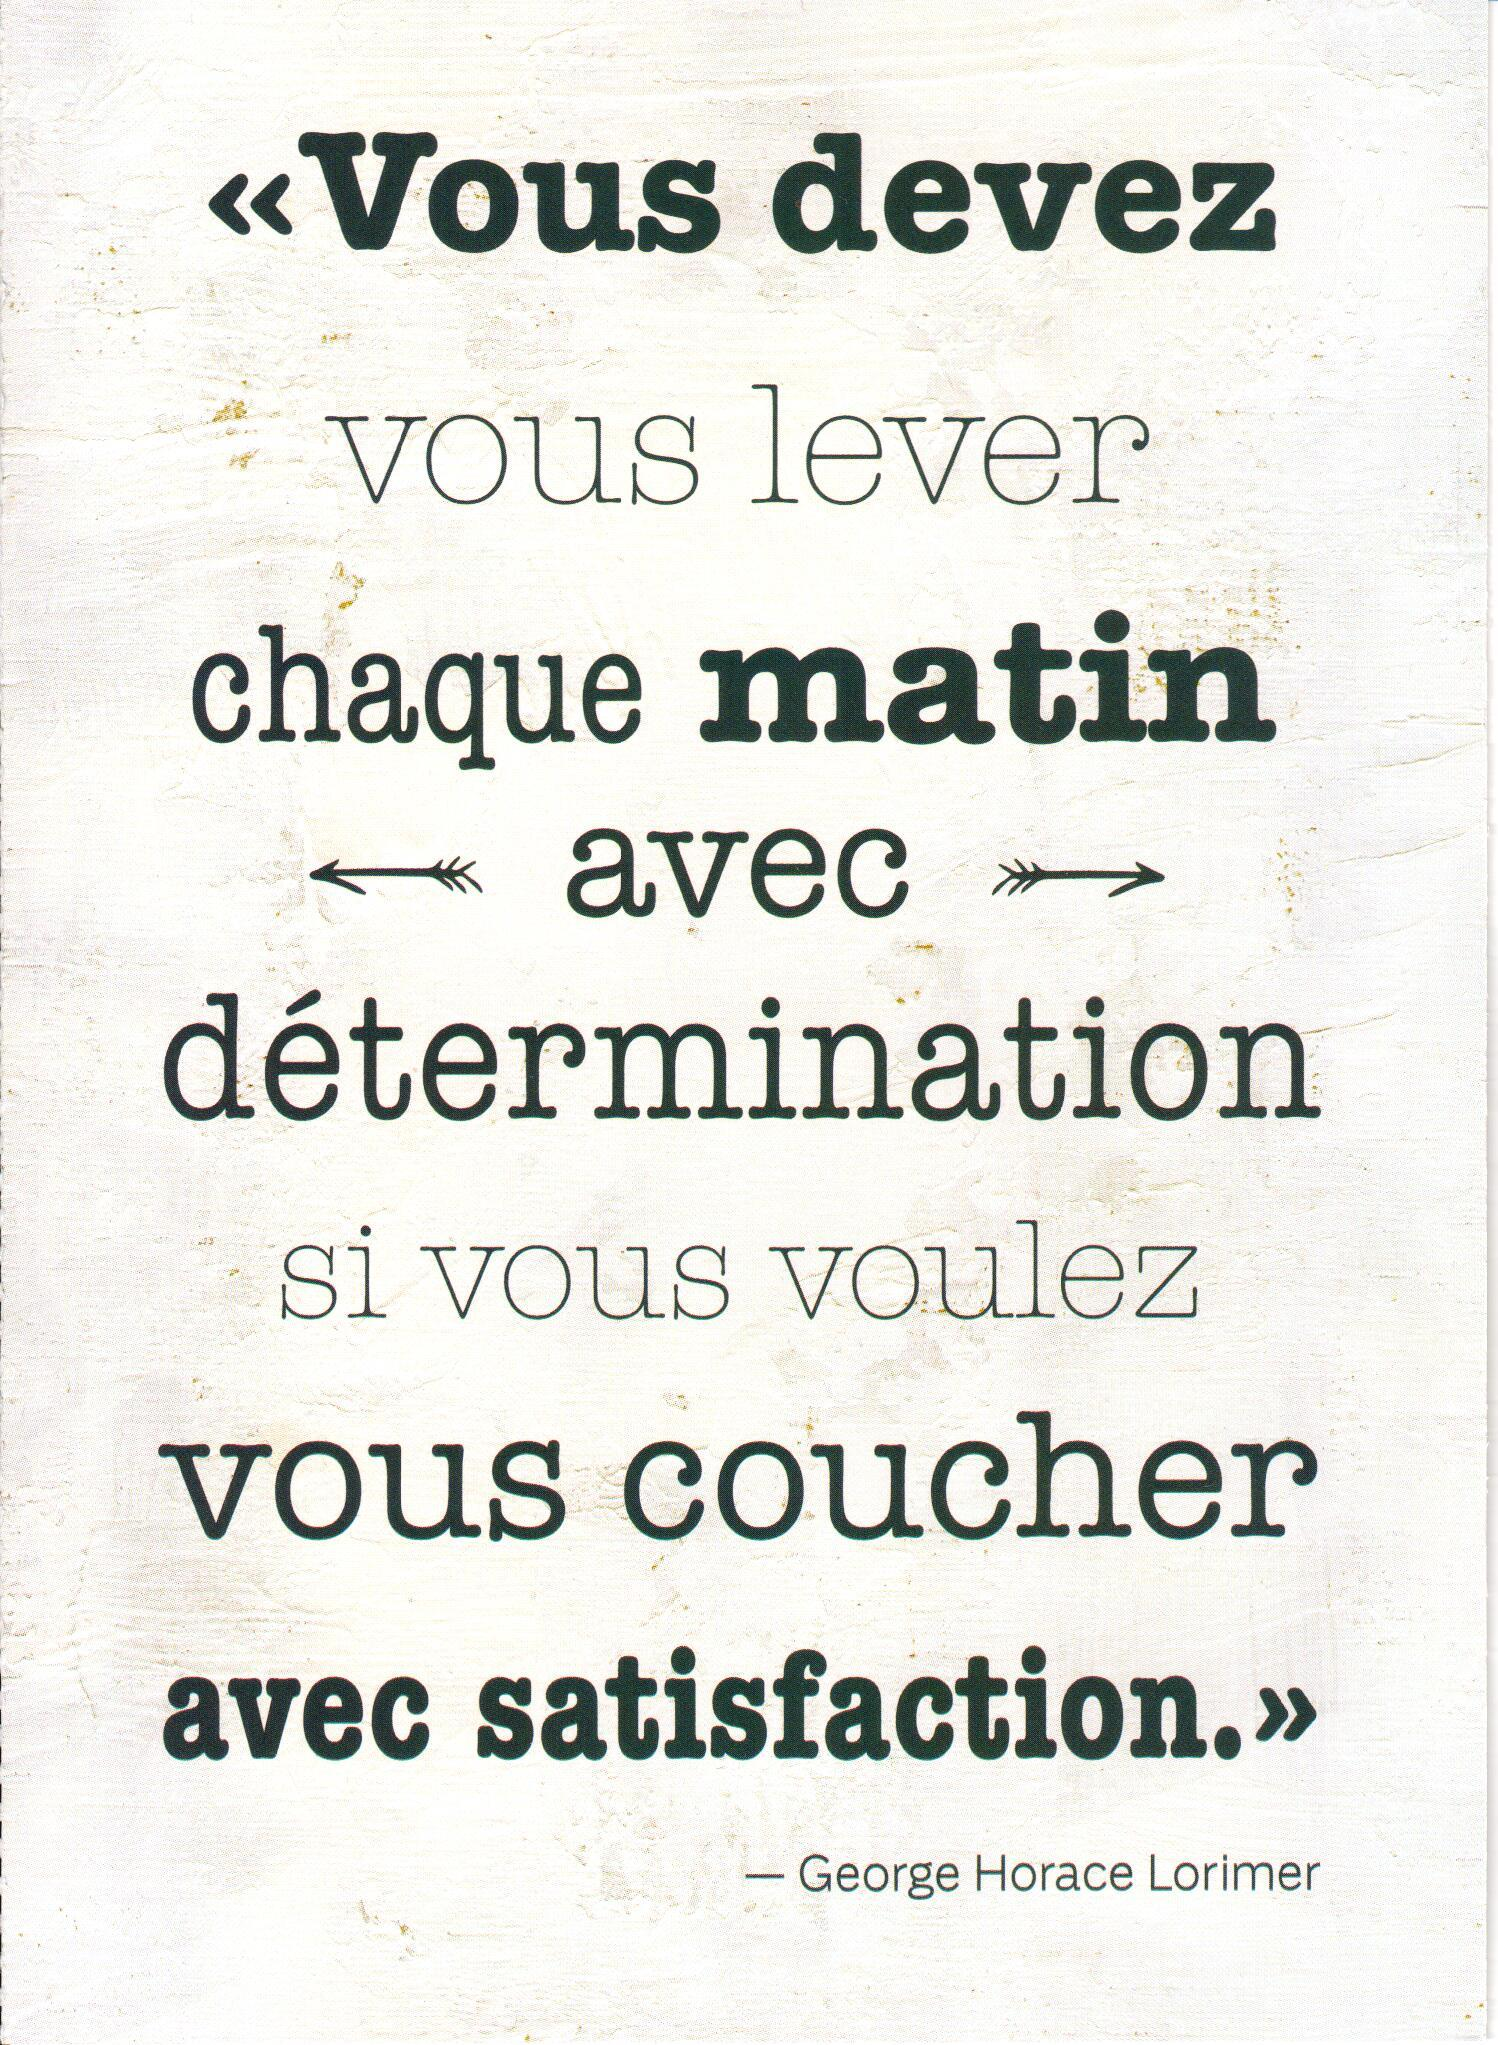 Citations et Proverbes 3 (page 4) Frawsy